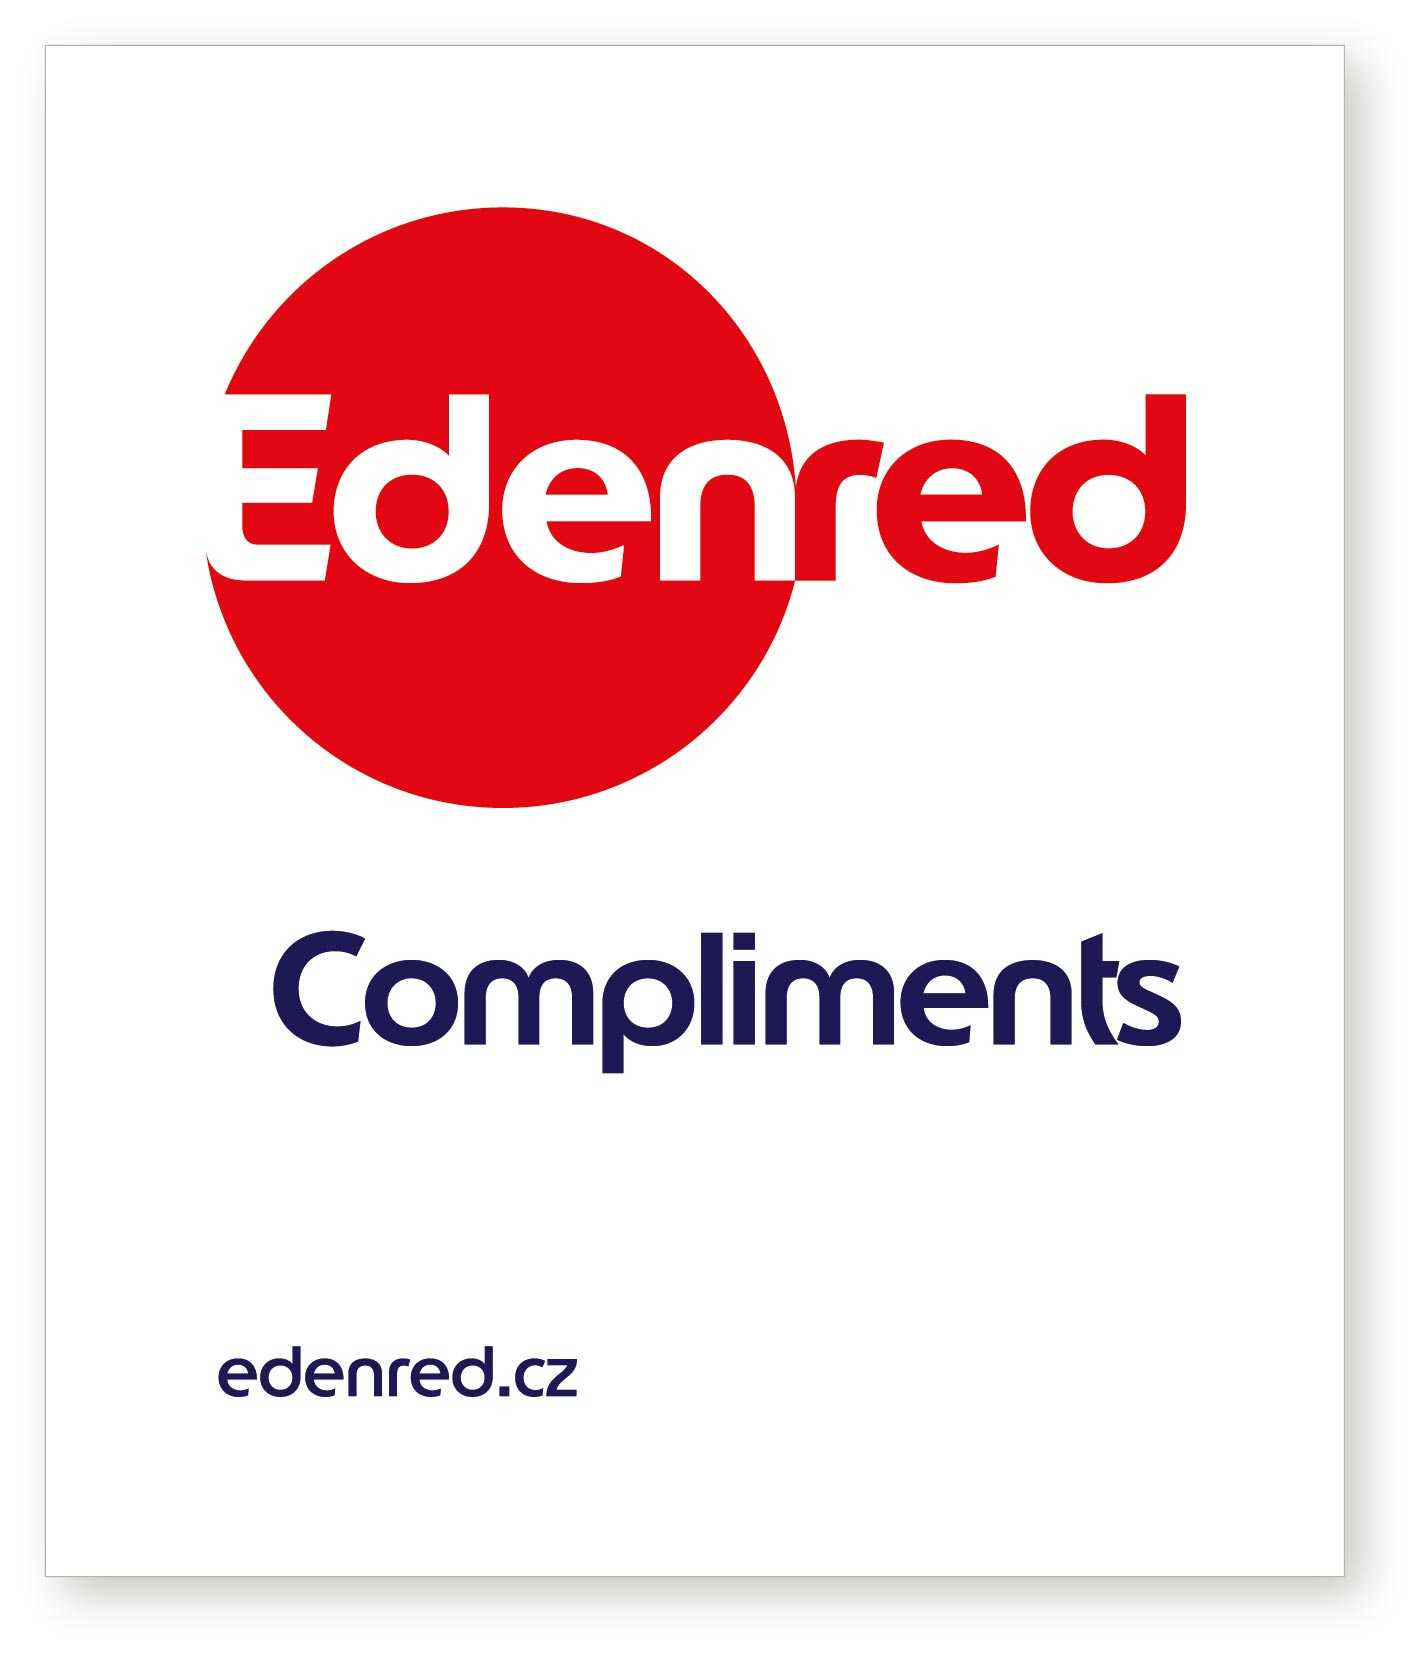 Edenred Compliments